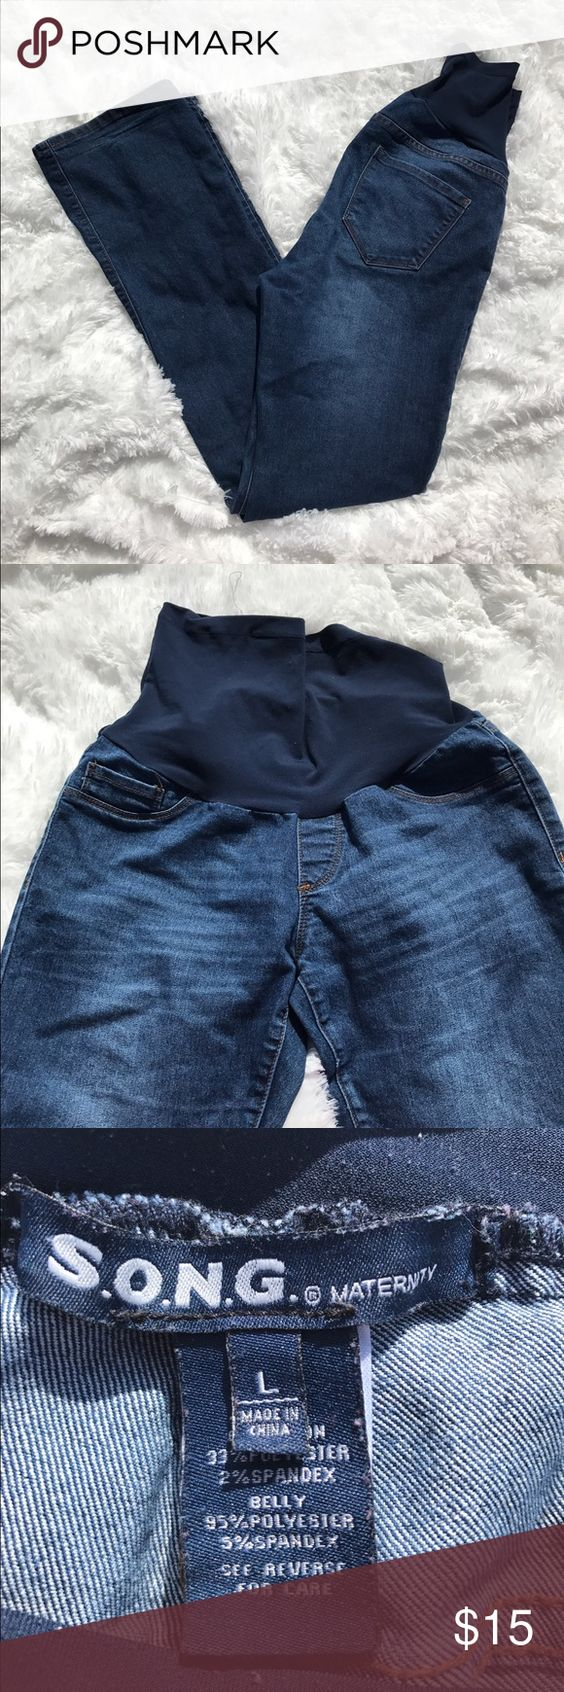 S.O.N.G Maternity Jeans | Maternity jeans, Boots and Blues